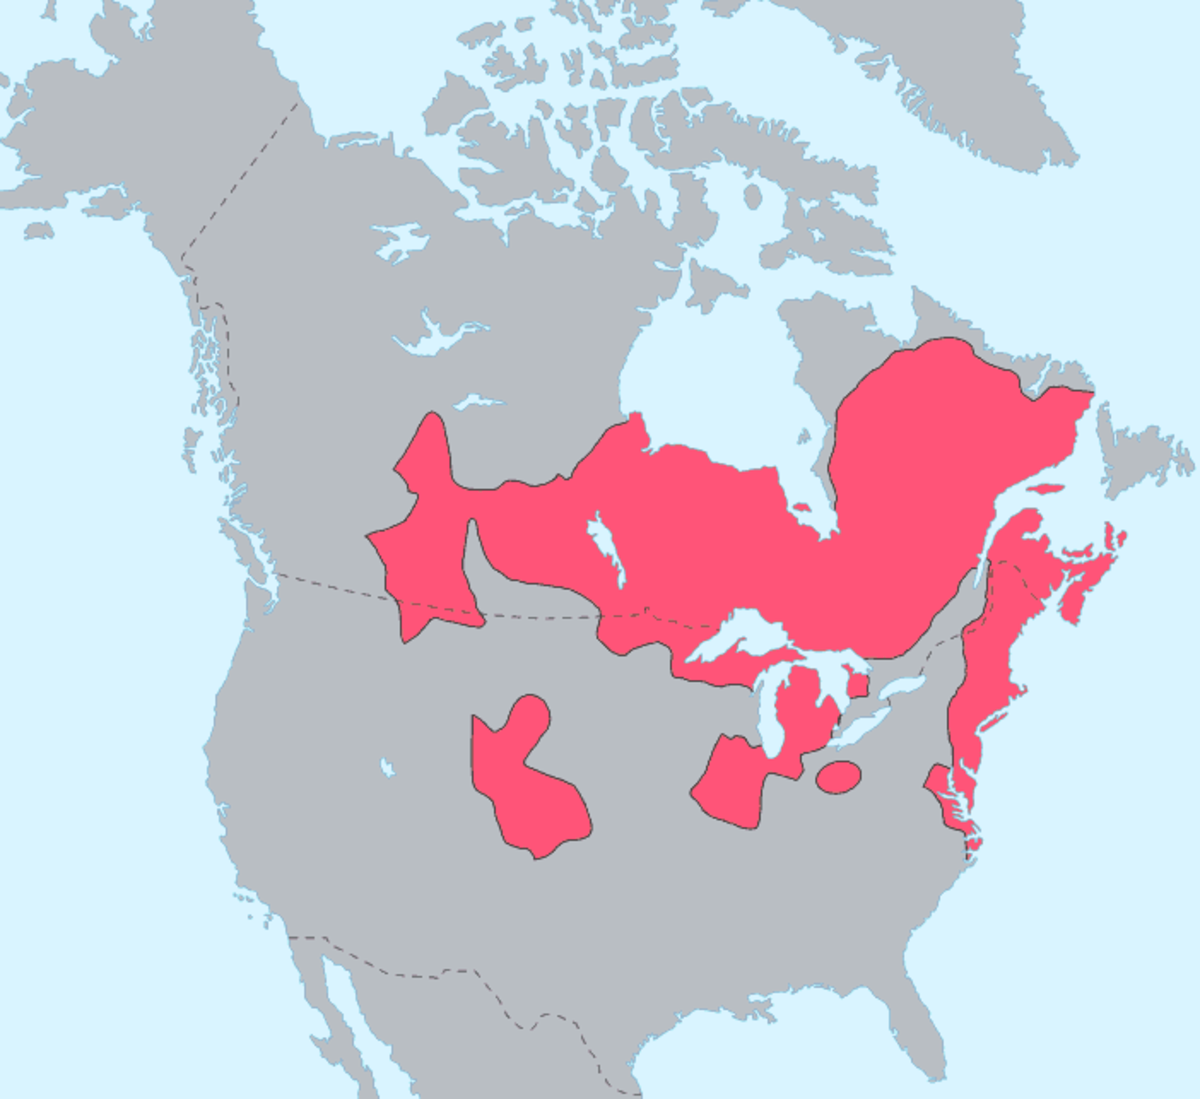 Algonquian Land that is known to have Wendigo sightings.